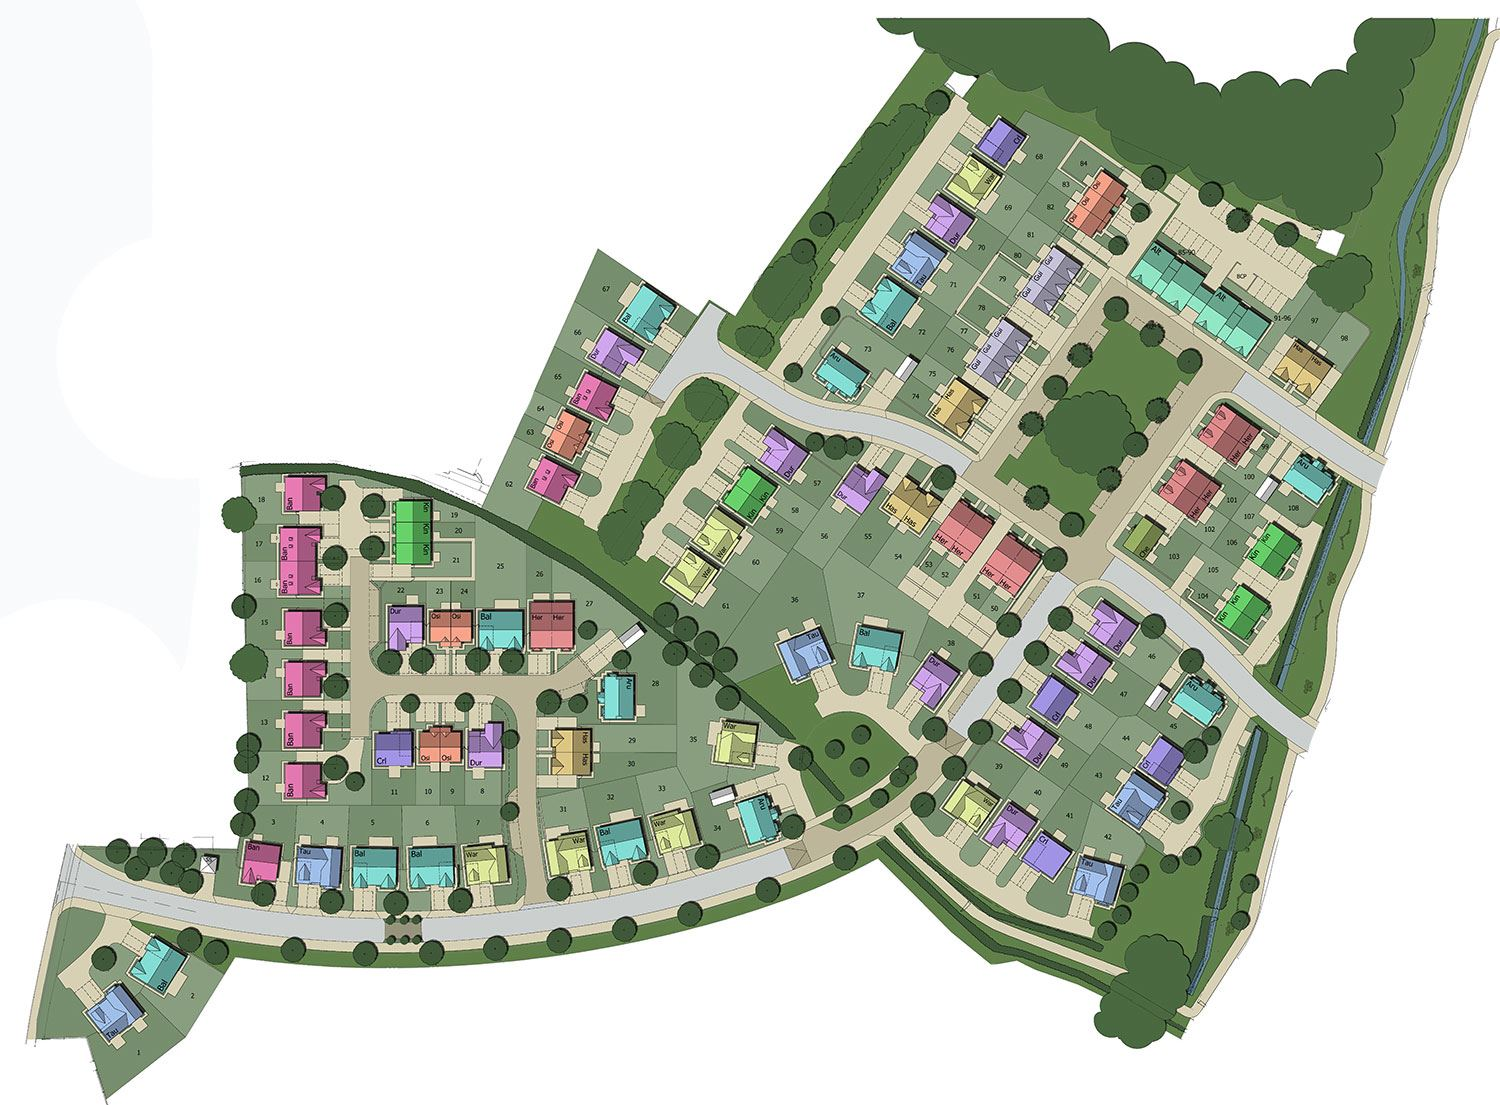 New houses for sale at carlisle ca2 4qw for Home site plan